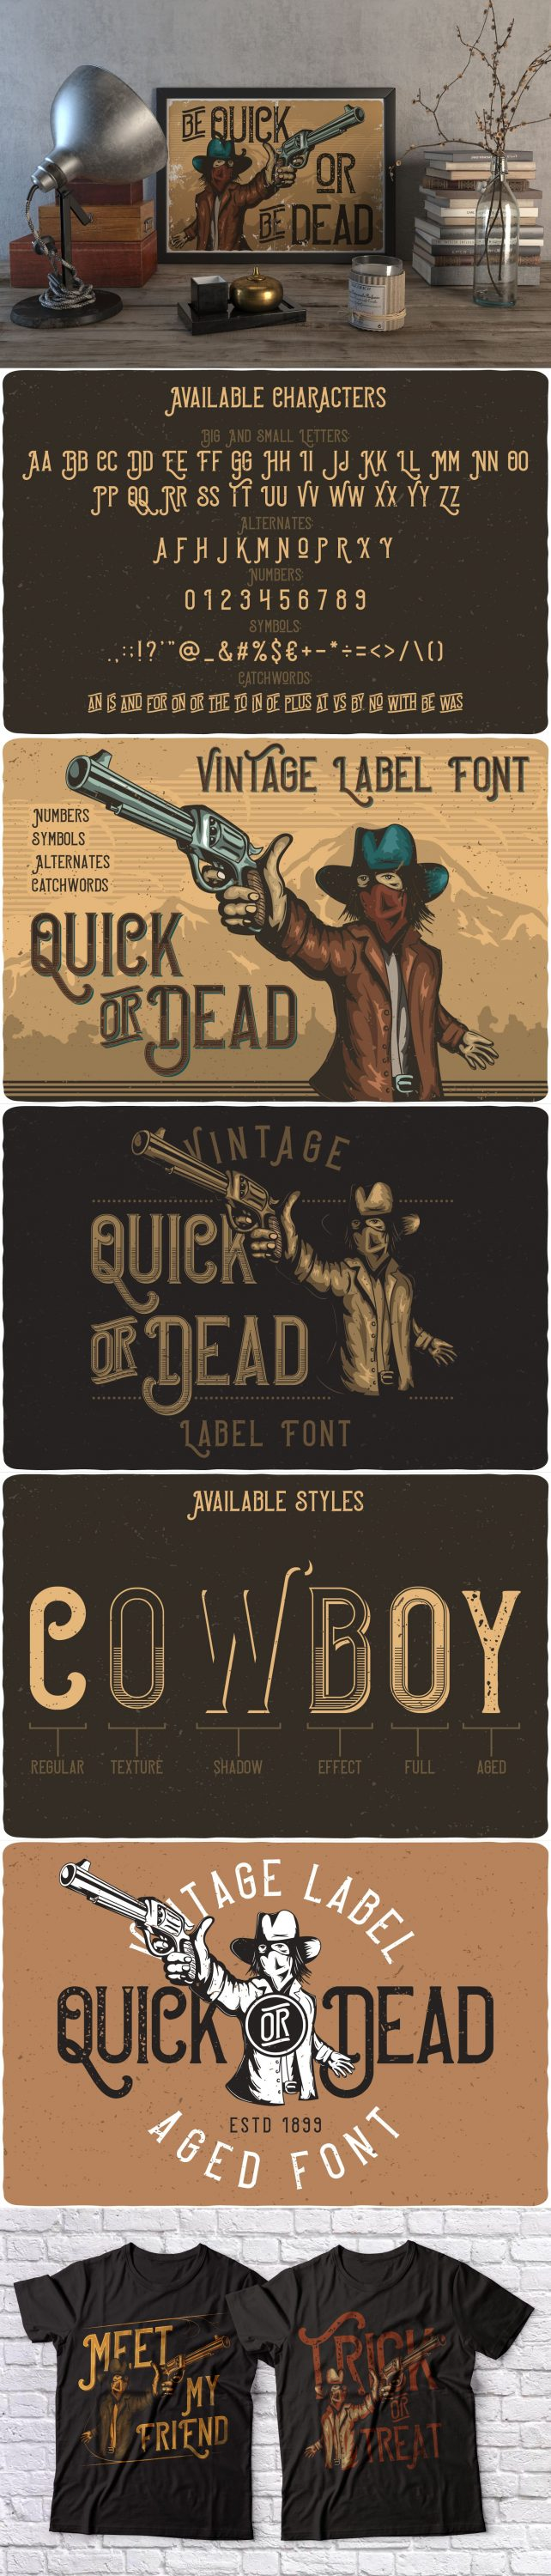 Quick or Dead for pinterest.